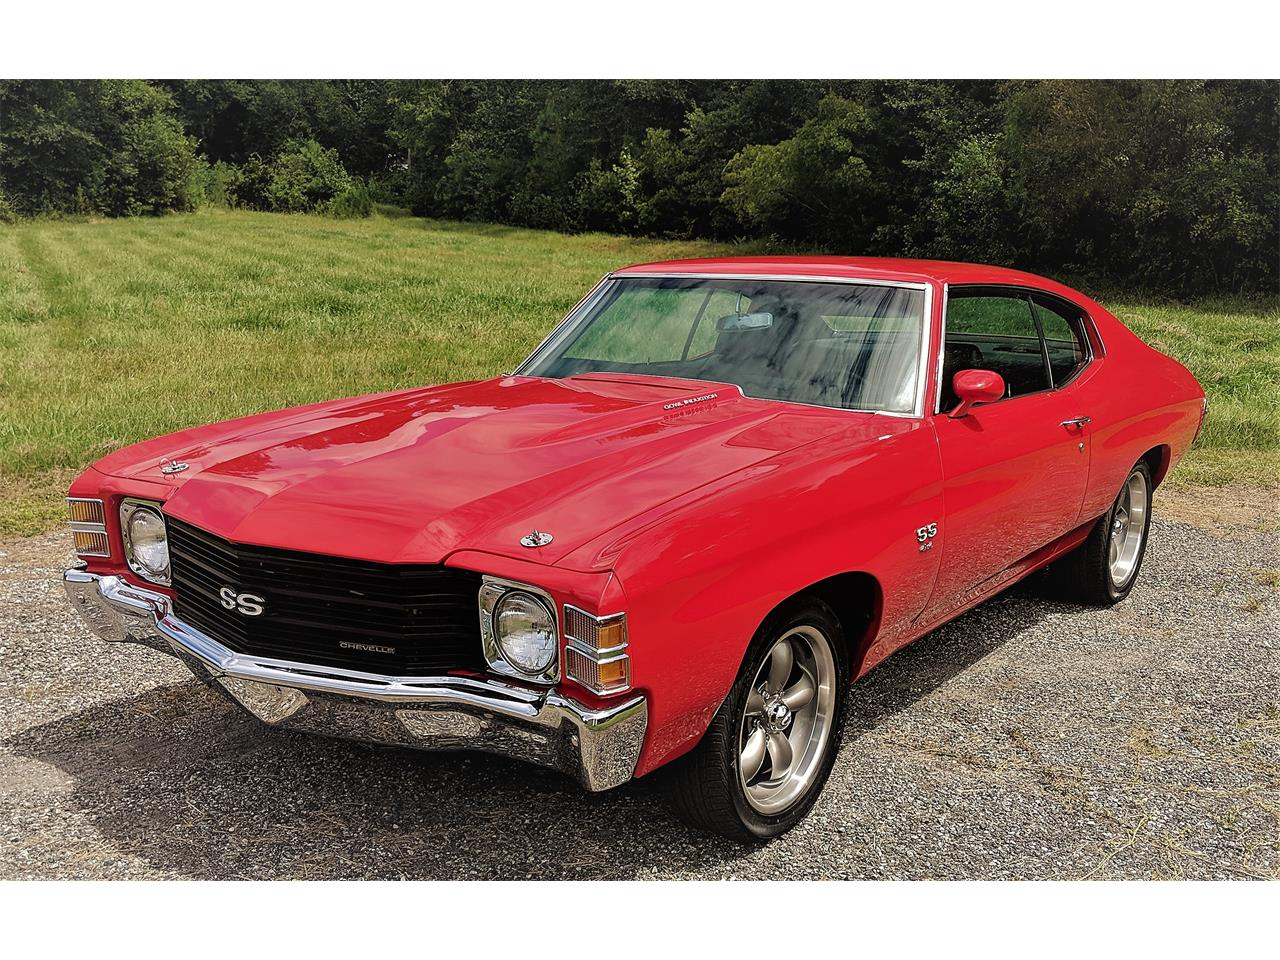 Large Picture of Classic '71 Chevrolet Chevelle SS located in Georgia - $33,000.00 Offered by a Private Seller - OH9I